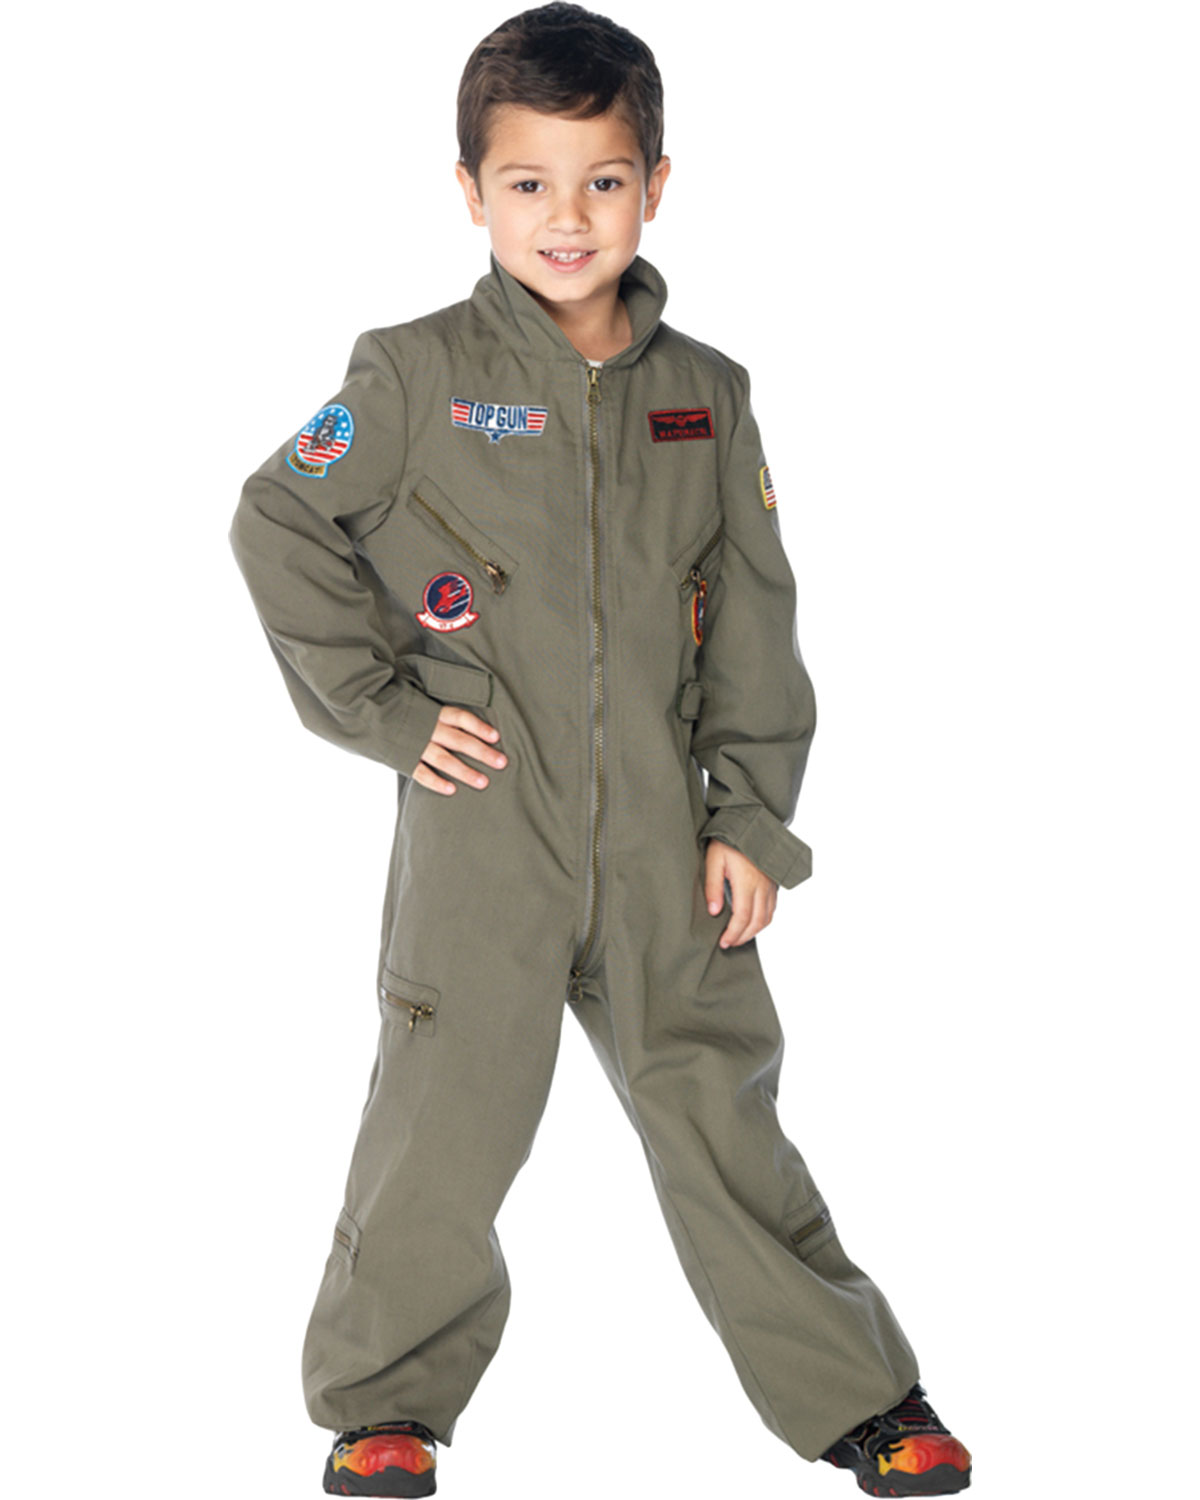 Halloween Costumes UATG48164XS Top Gun Flight Suit Child Xs at GotApparel